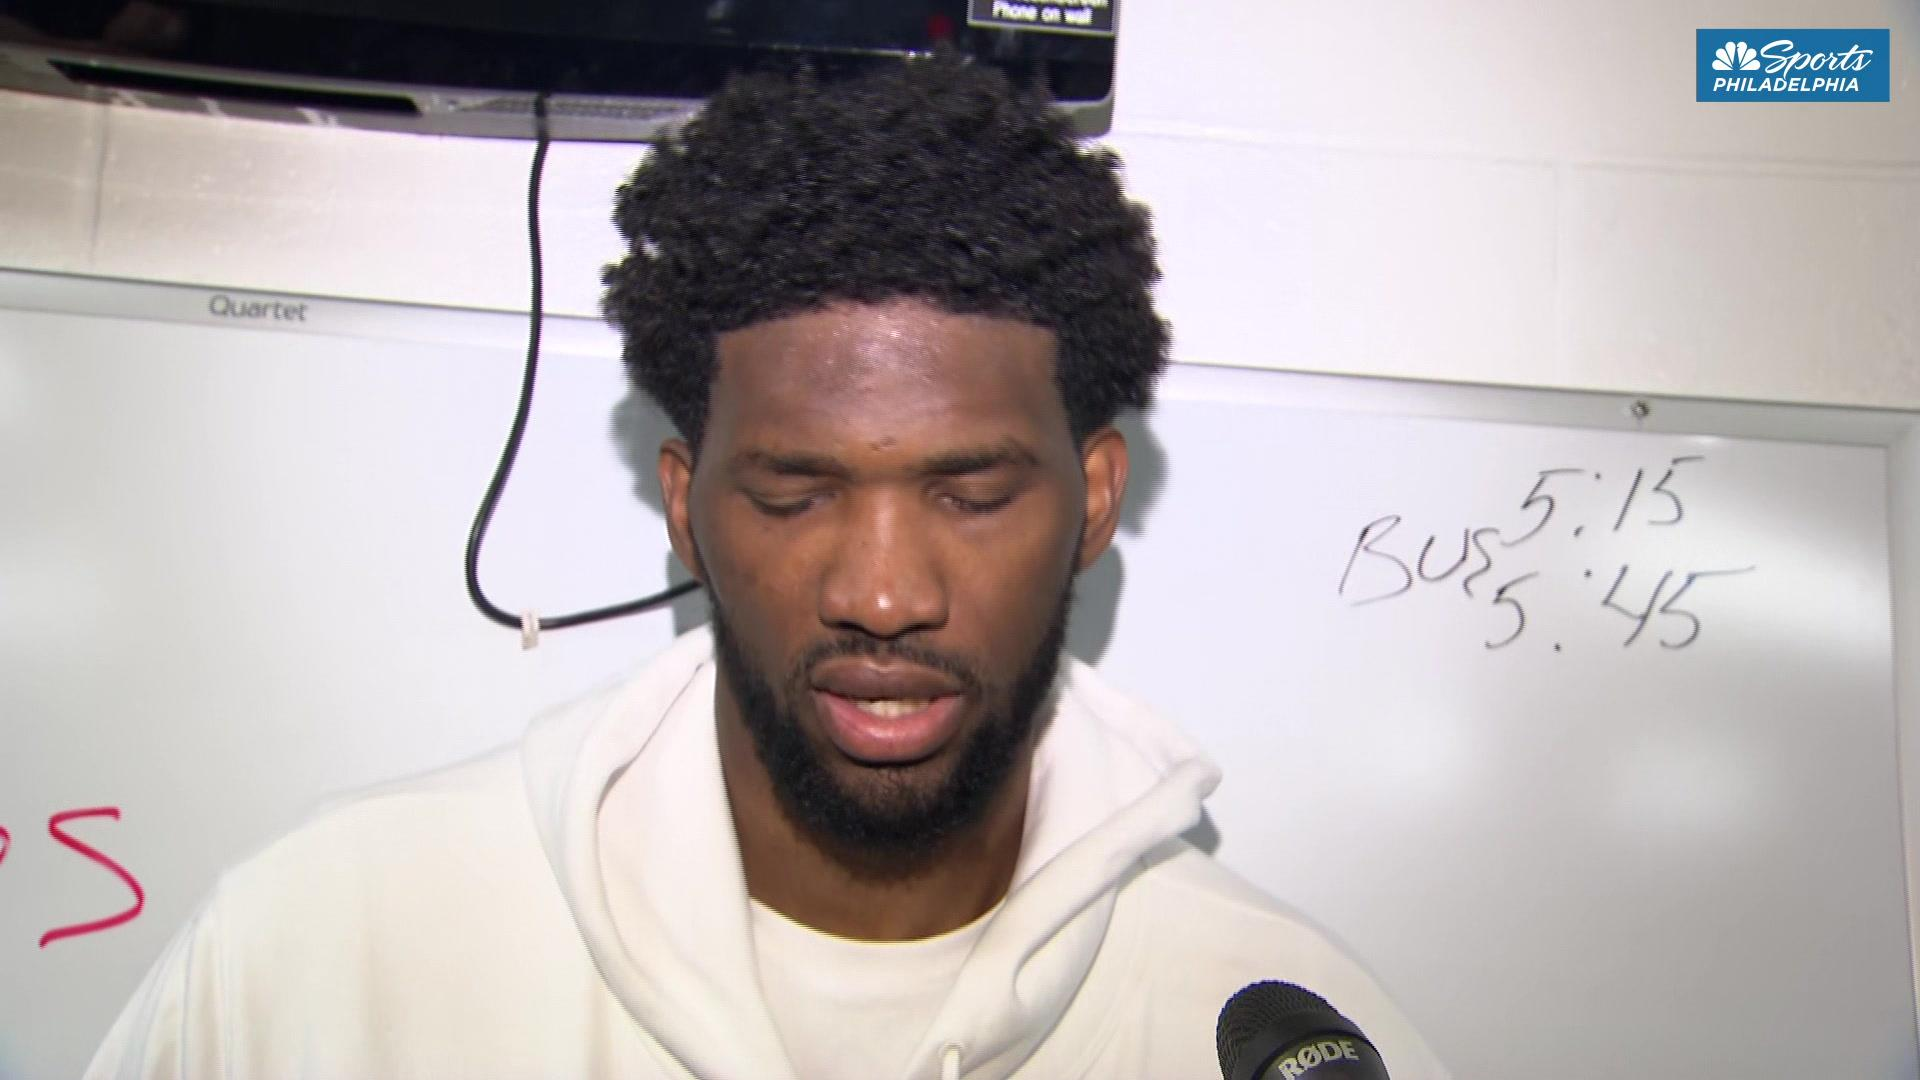 Joel Embiid with some strong words after Sixers lose to Boston Celtics